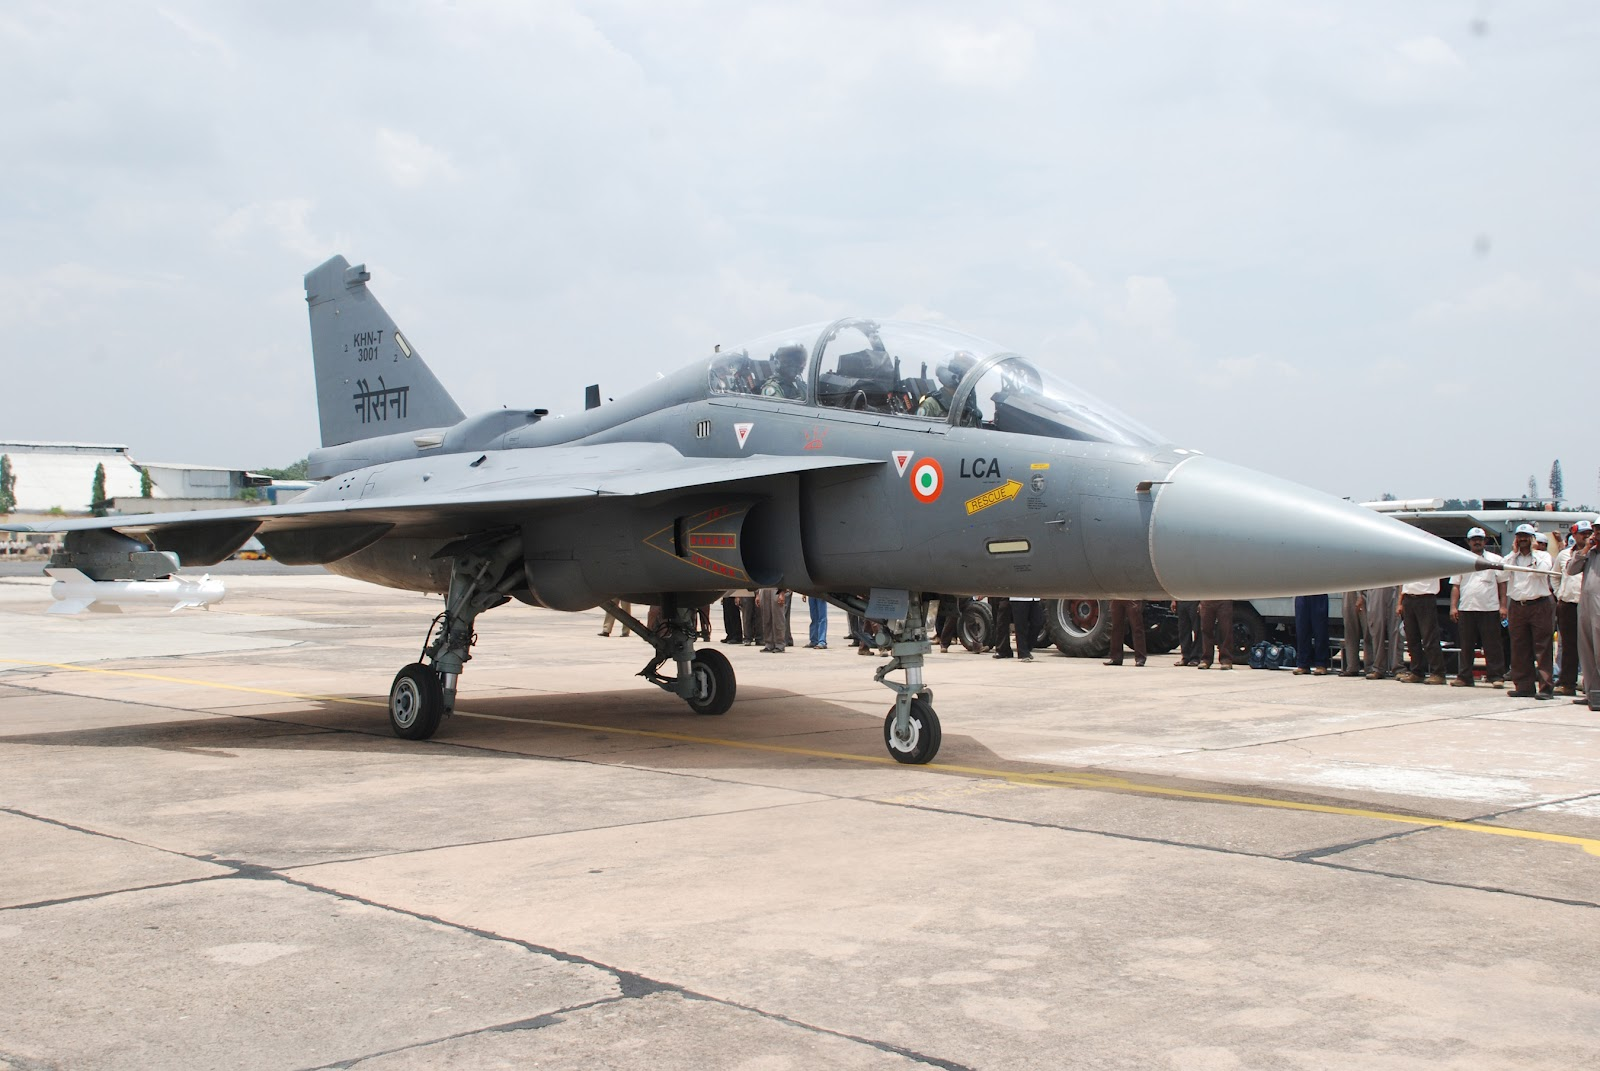 conflict shooting pics finally lca navy makes its maiden flight rh conflictshooting blogspot com LCA Tejas and MiG-21 Stealth LCA Tejas